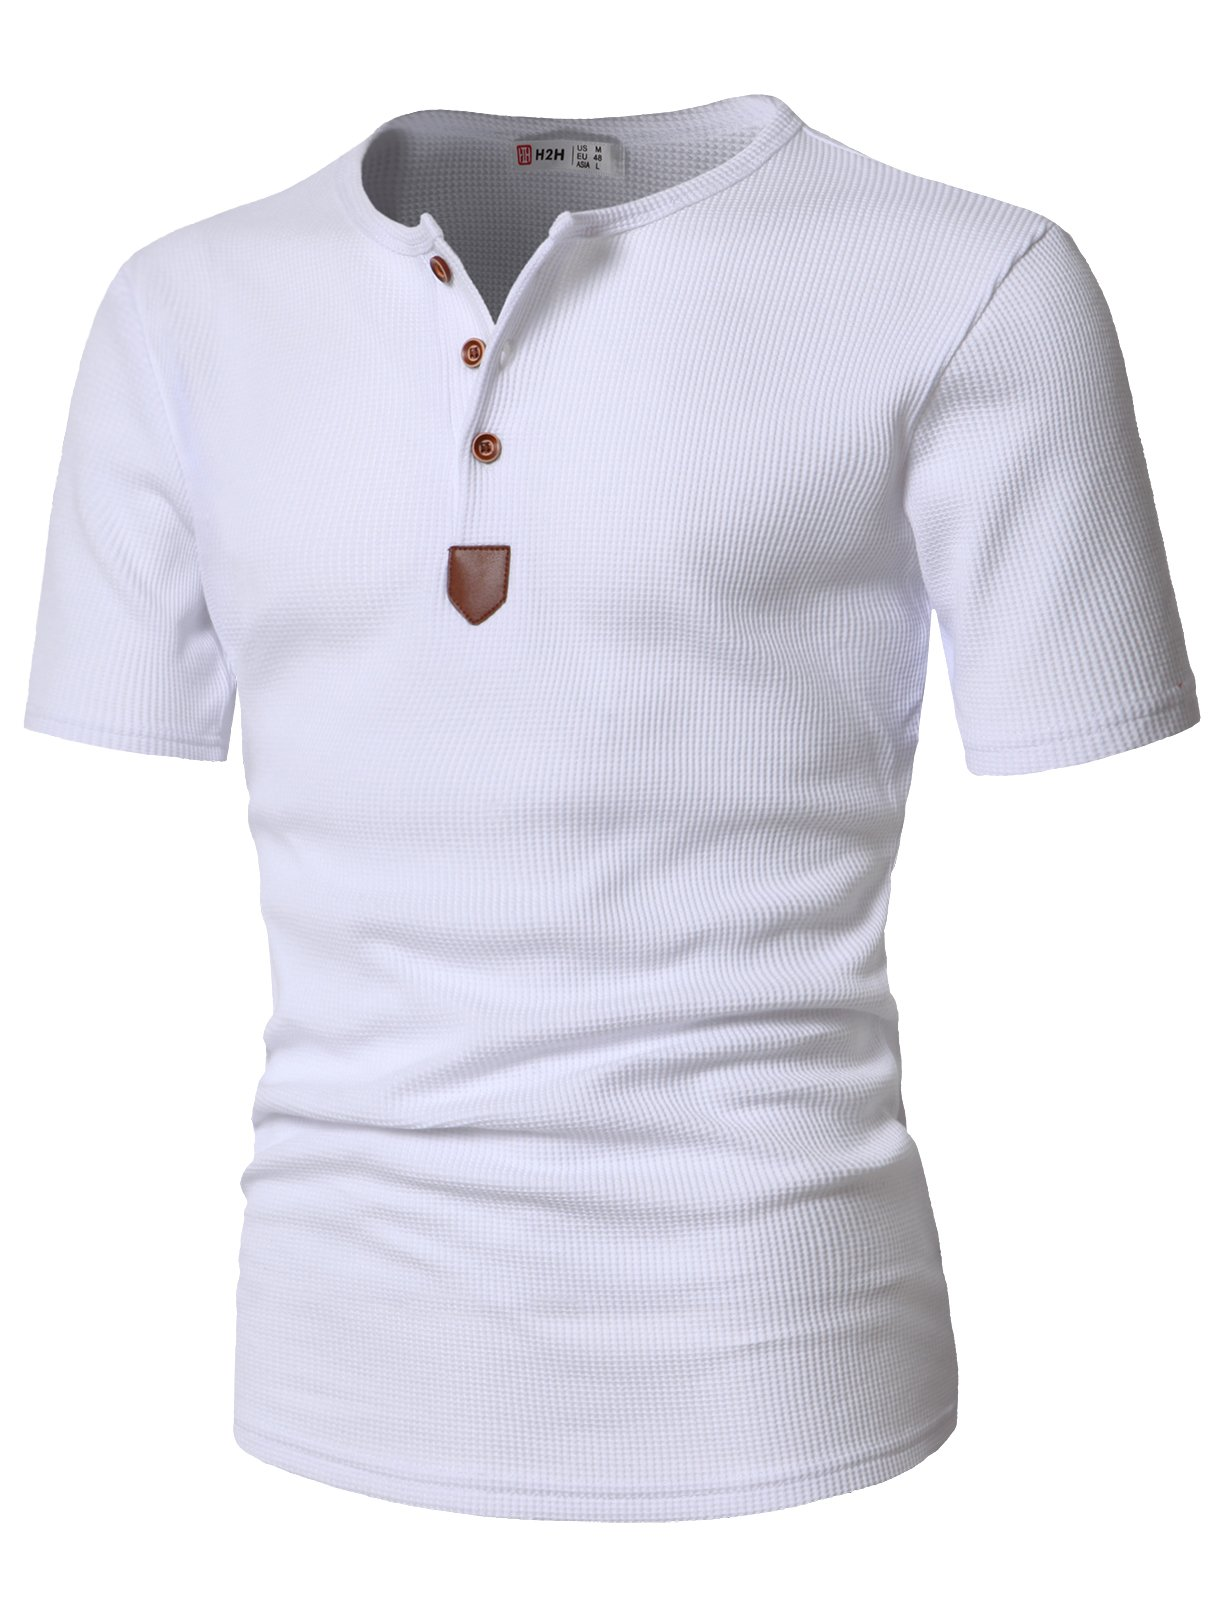 H2H Mens Casual Half Sleeve Henley Pullover T-Shirts Of WHITE US L/Asia XL (JDSK31) by H2H